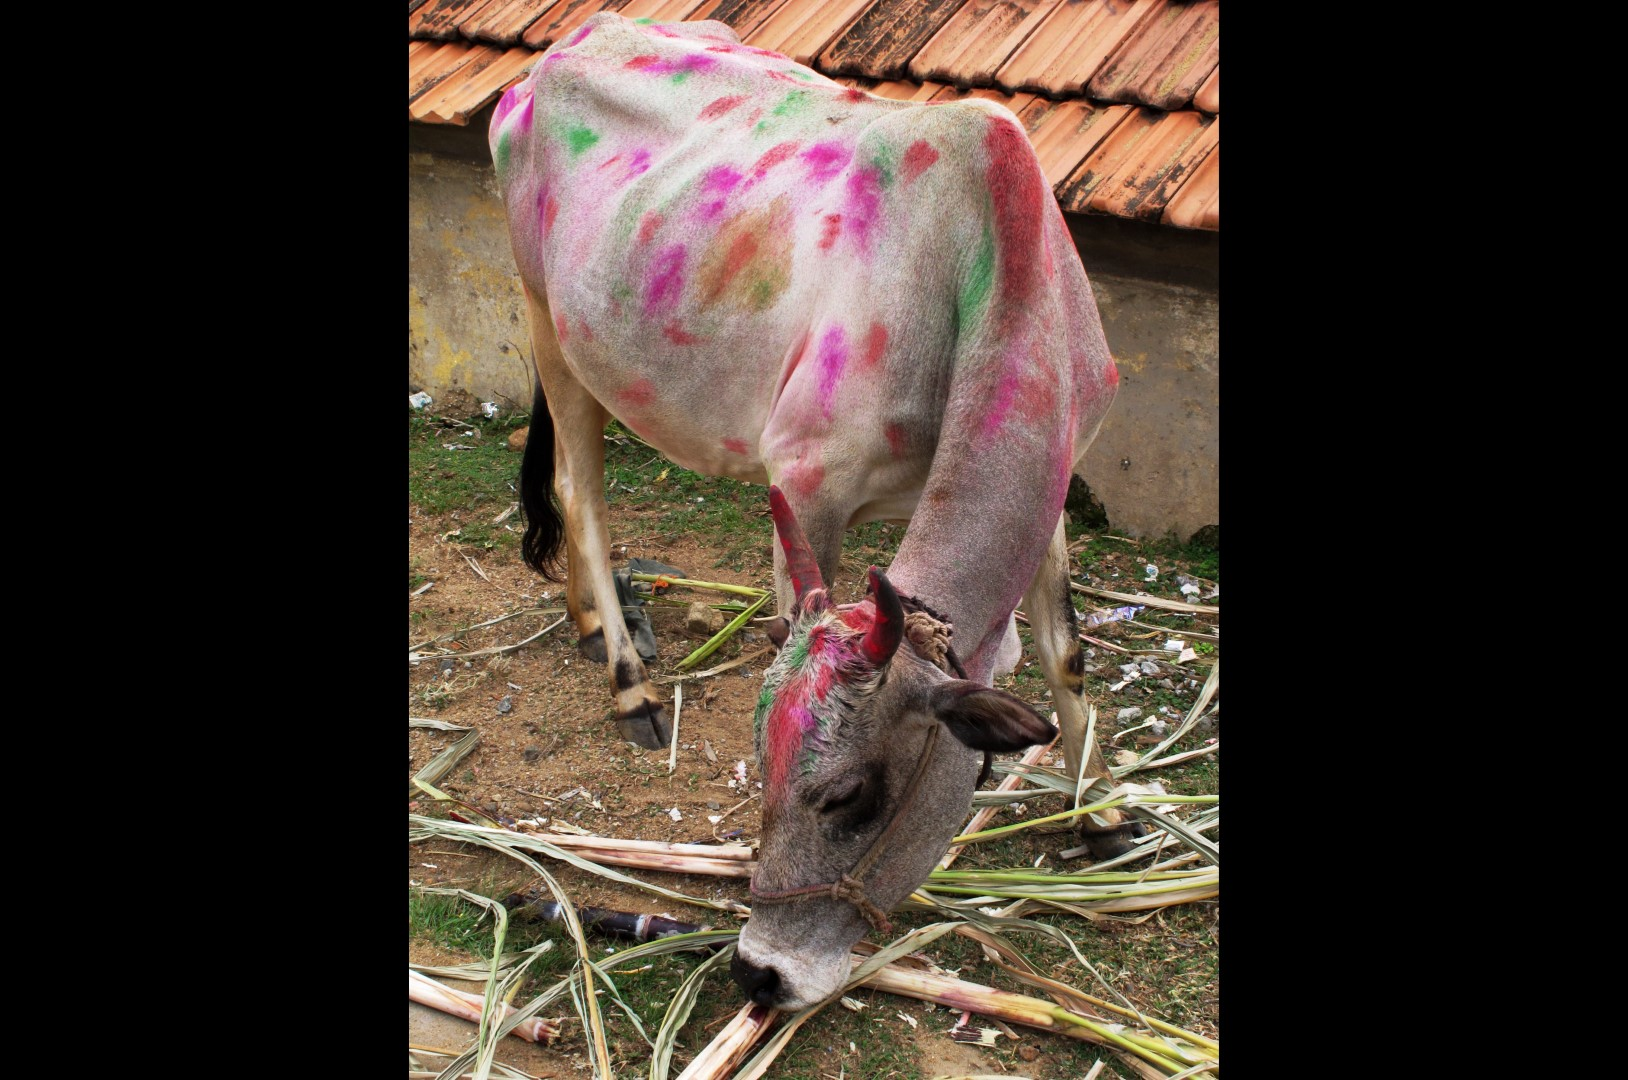 Cows are honoured during Matu Pongal and thus decorated to the hilt